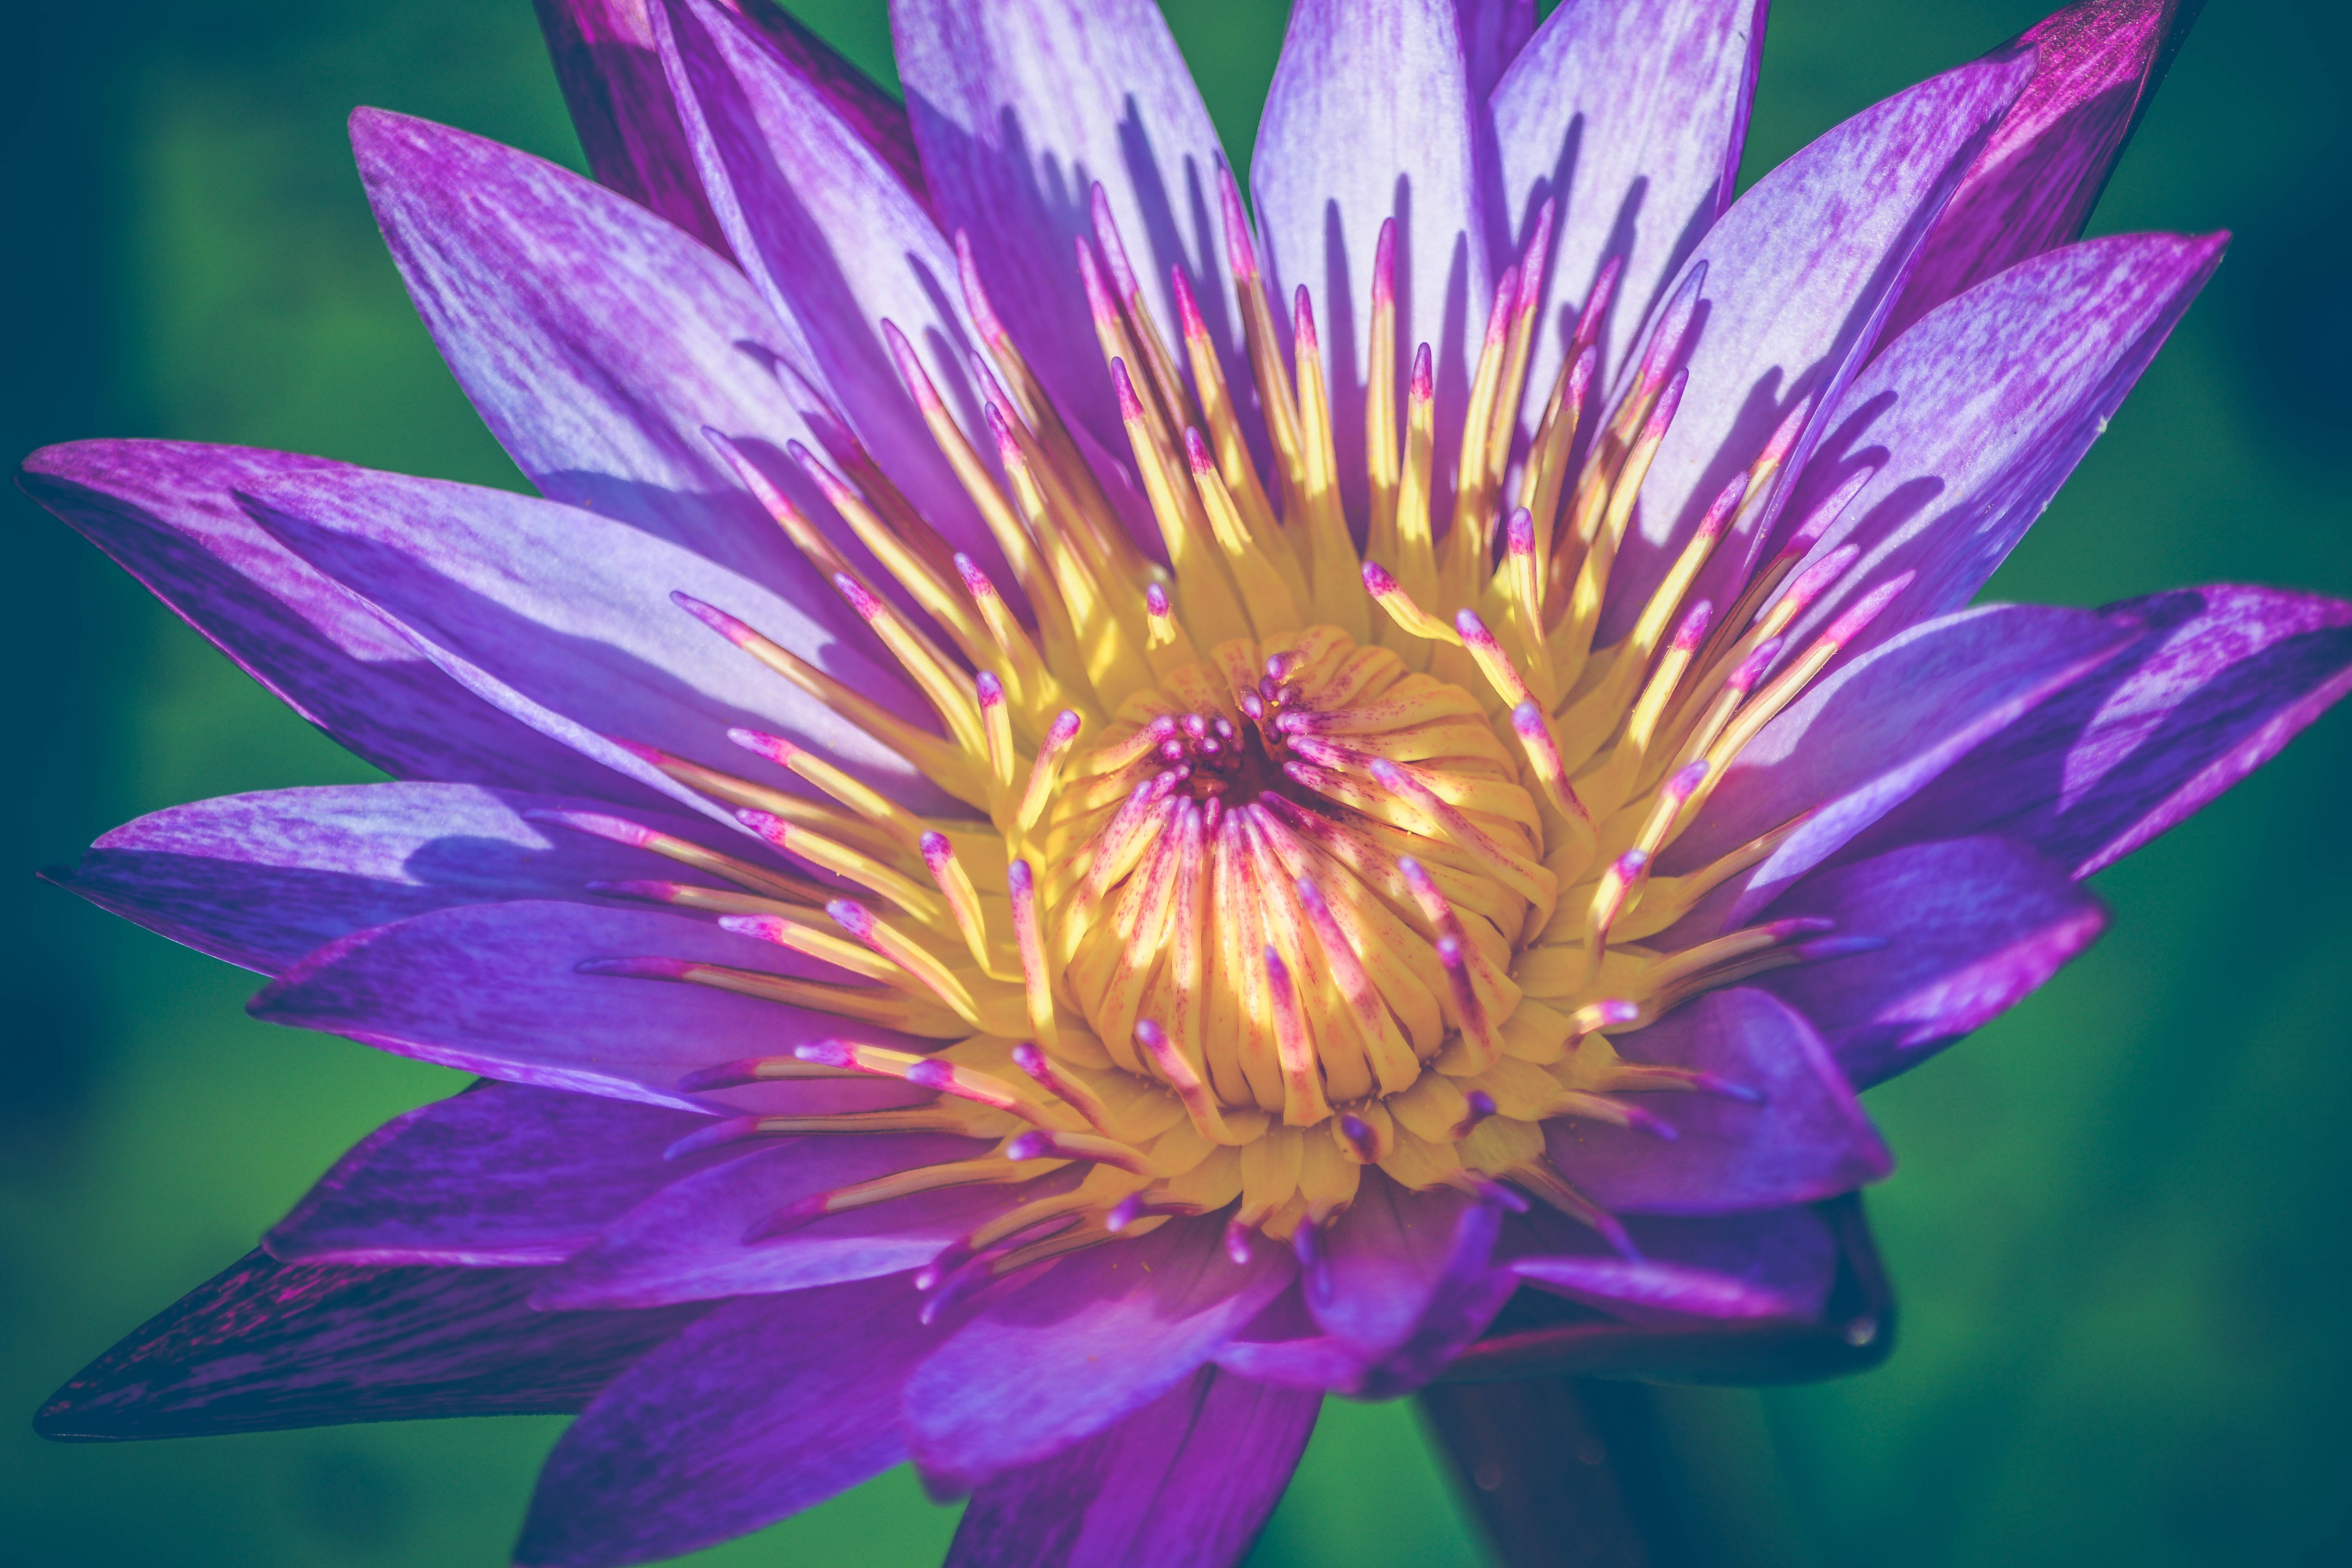 Closeup Photo of Purple and Yellow Water Lily Flower